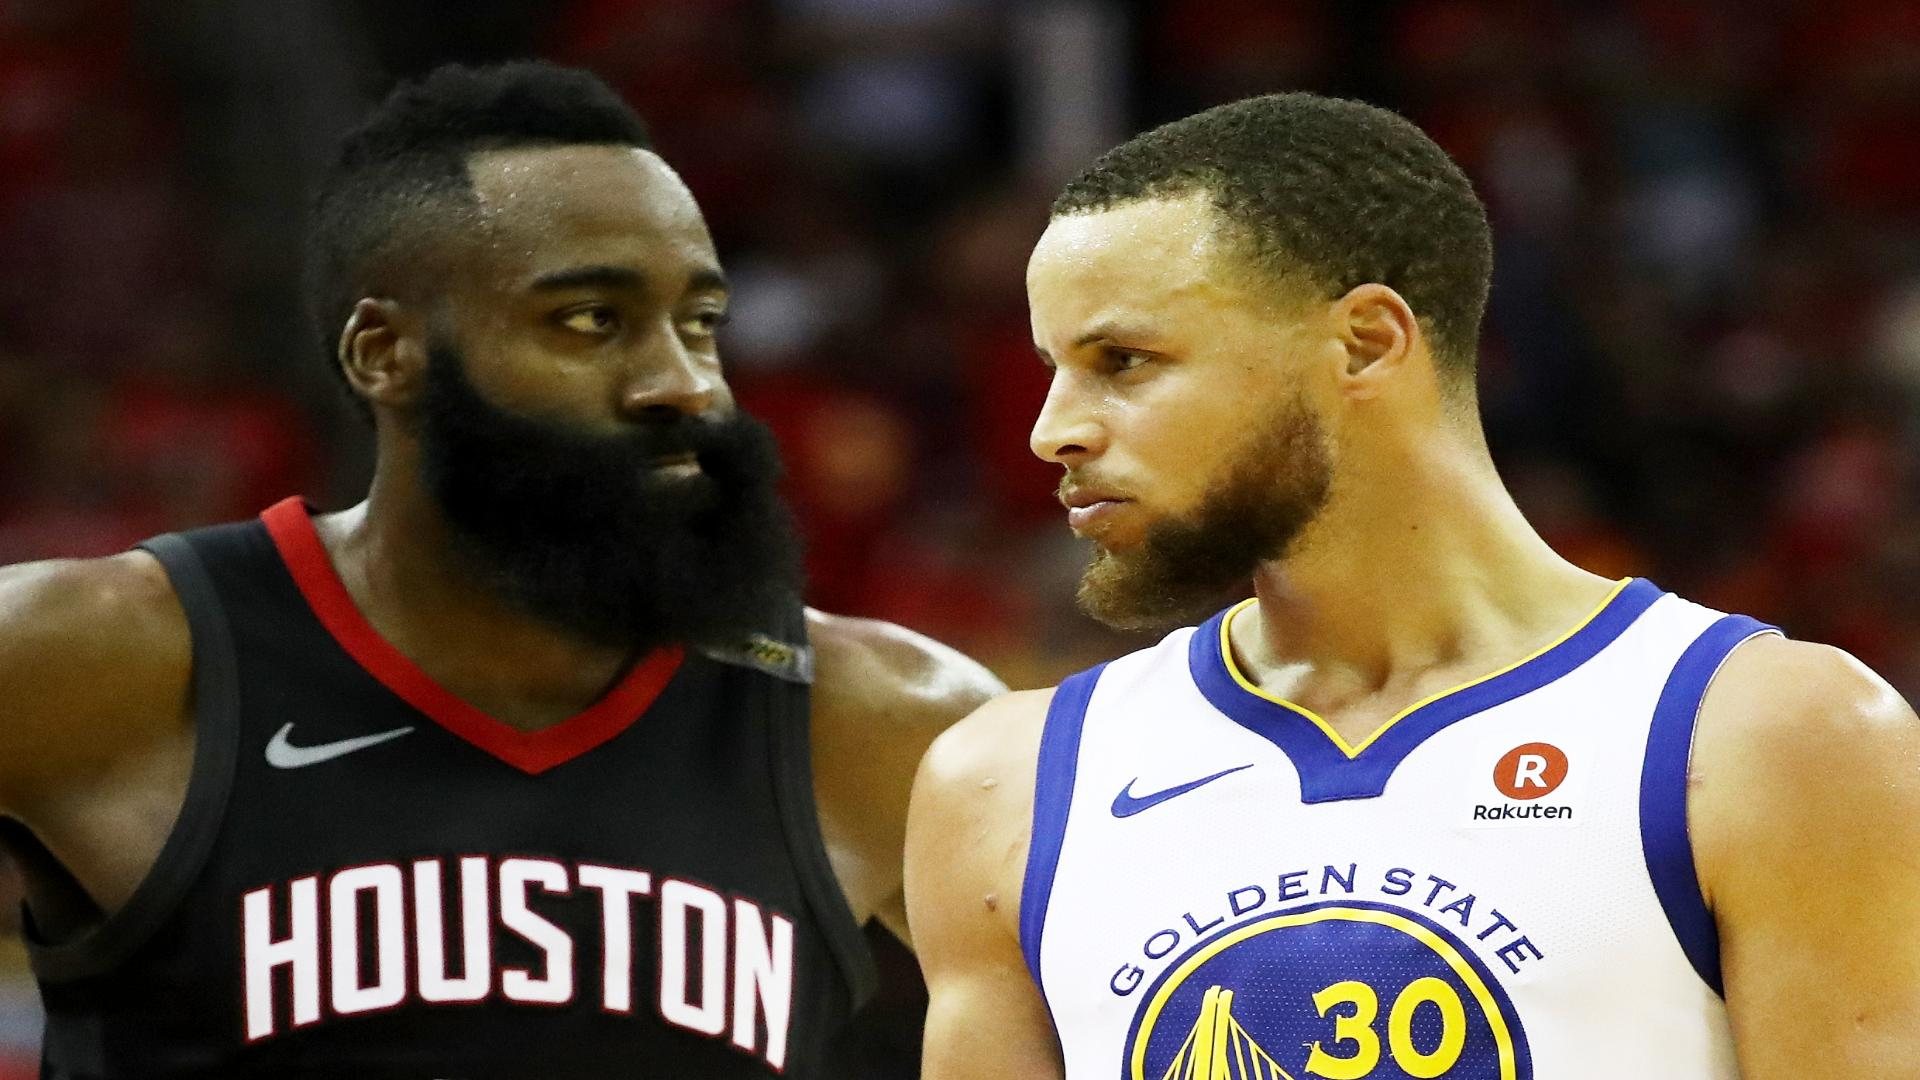 Warriors and Rockets set for epic 2018 WCF rematch